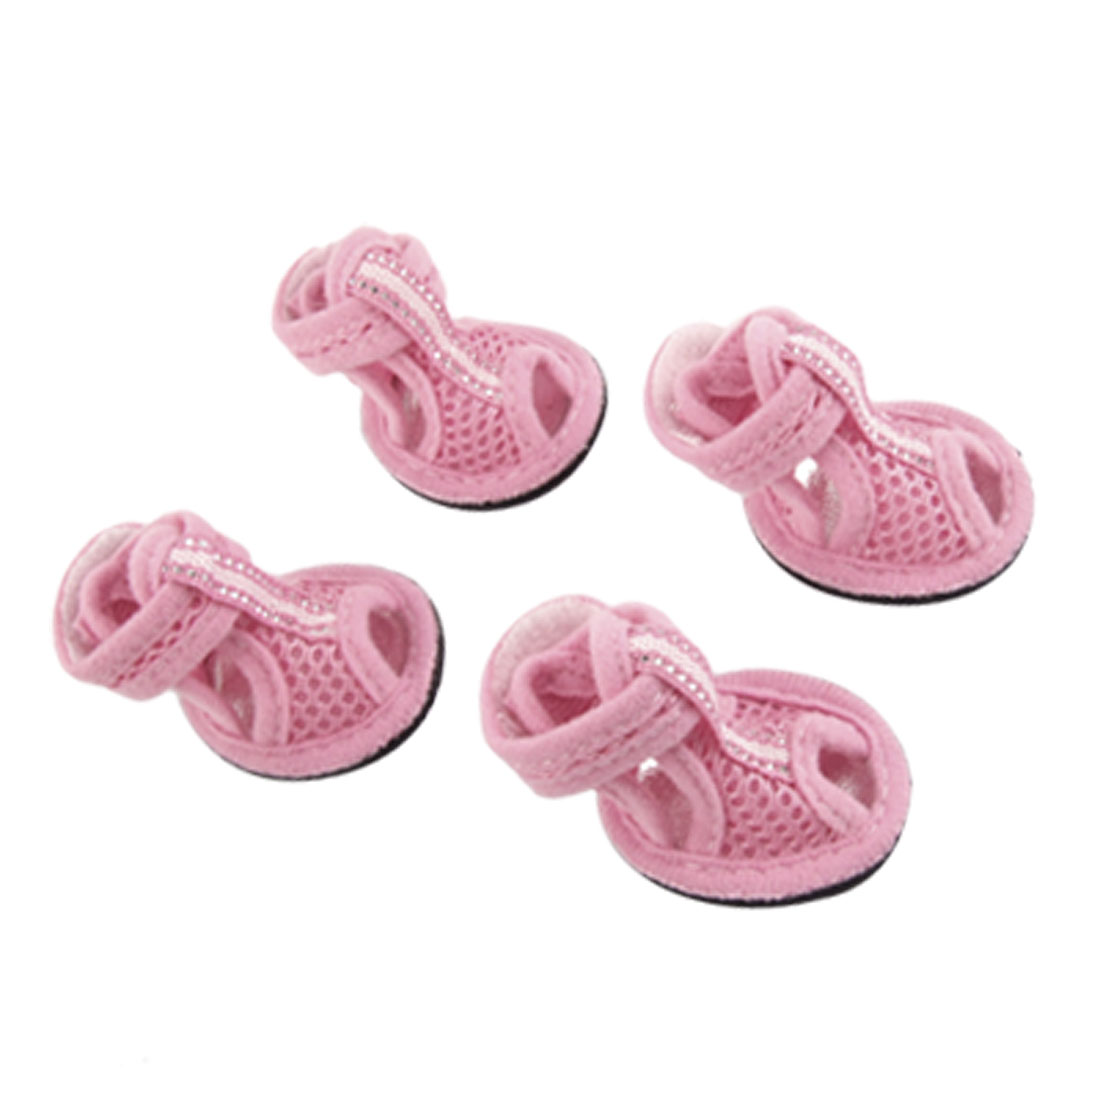 2 Pairs Open Toe Style Nonslip Soles Sandals Pink Mesh Dog Shoes Size 5